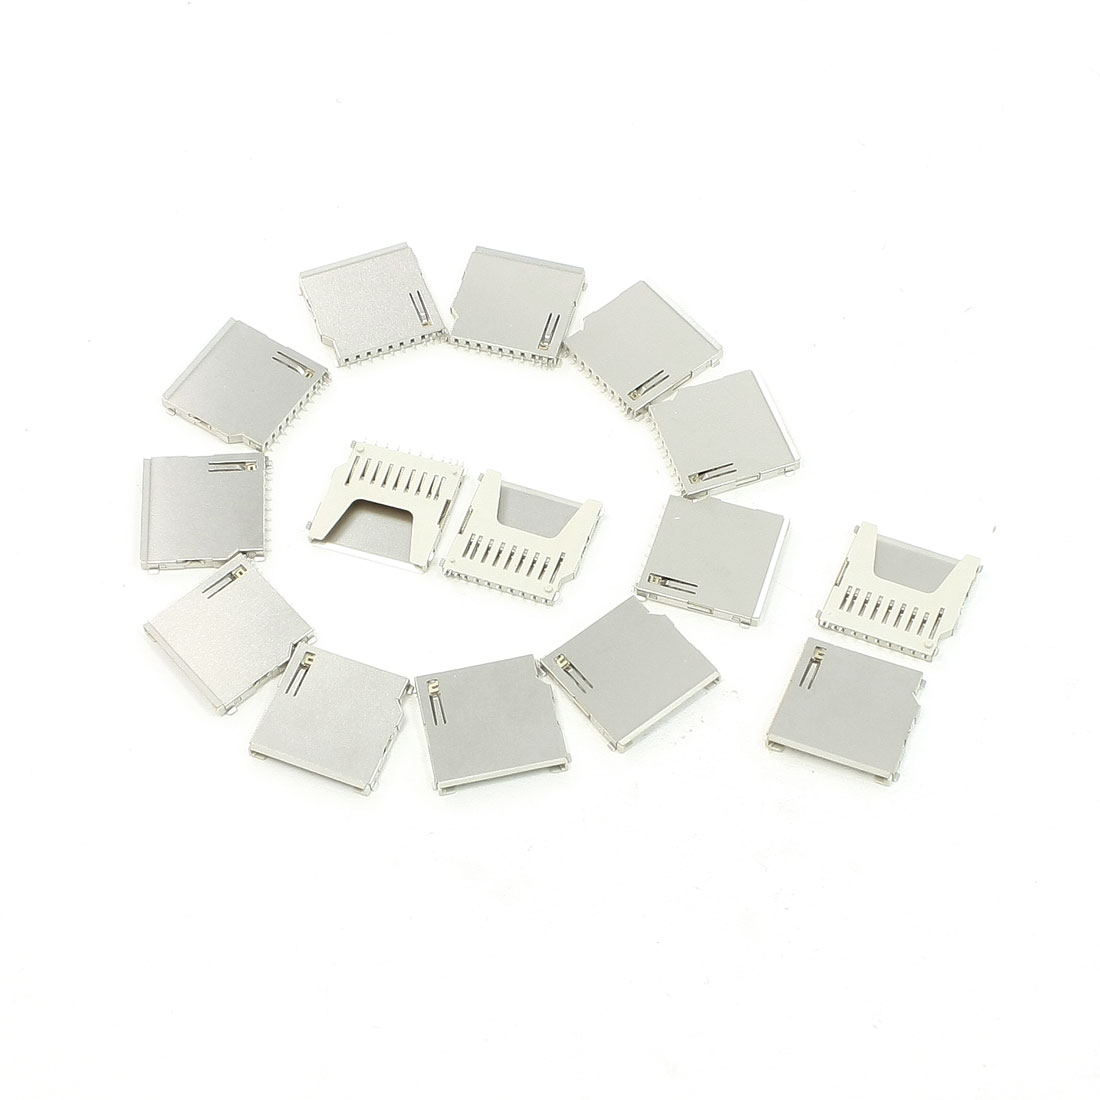 15Pcs SMT Mounting Pull-Out Type SD Memory Card Sockets 26mm x 26mm